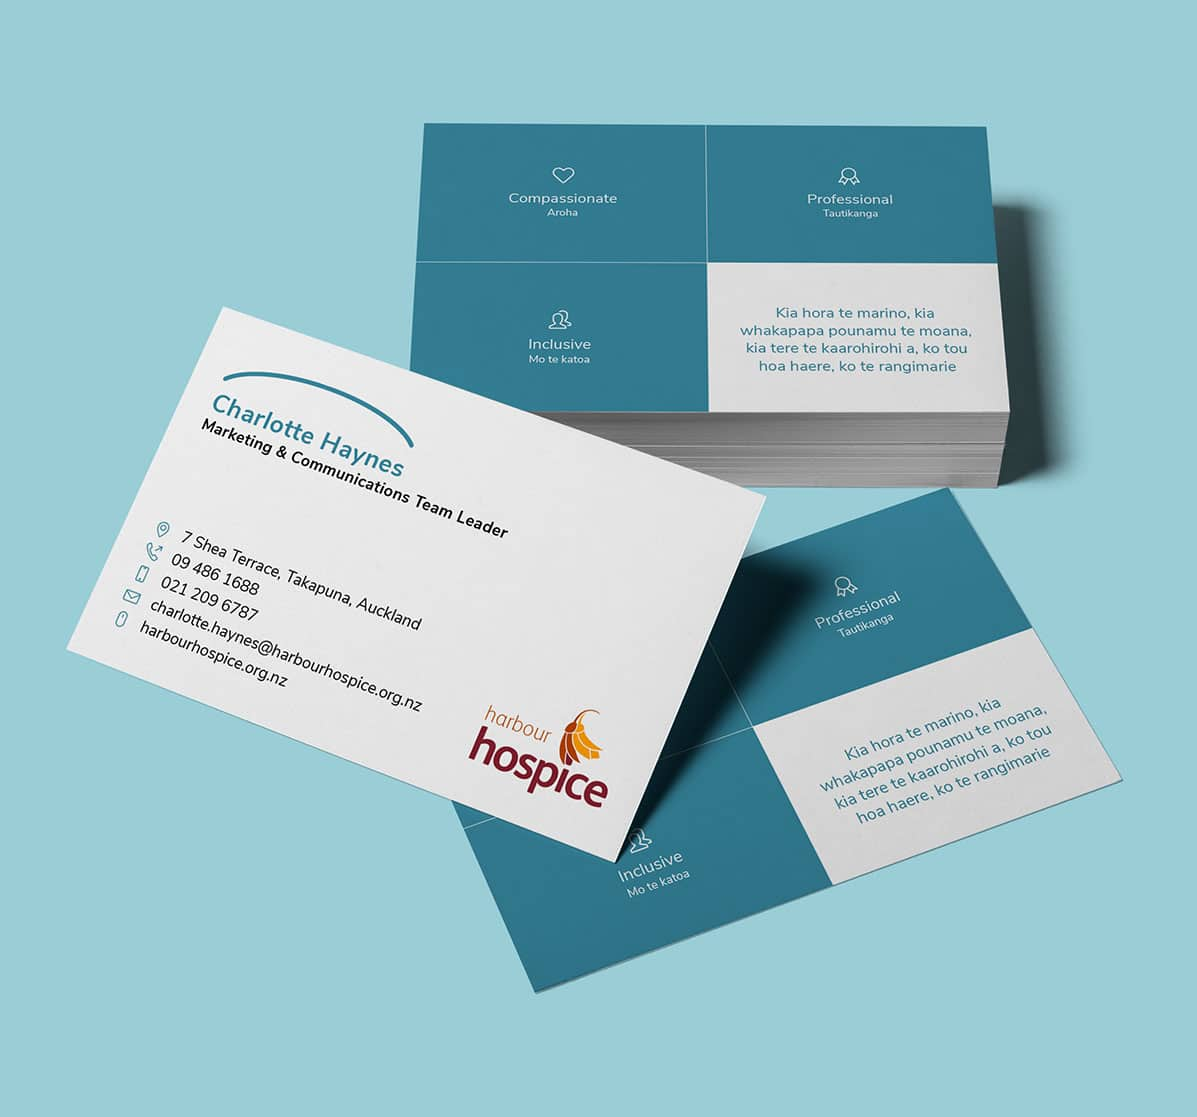 Company rebranding on business cards